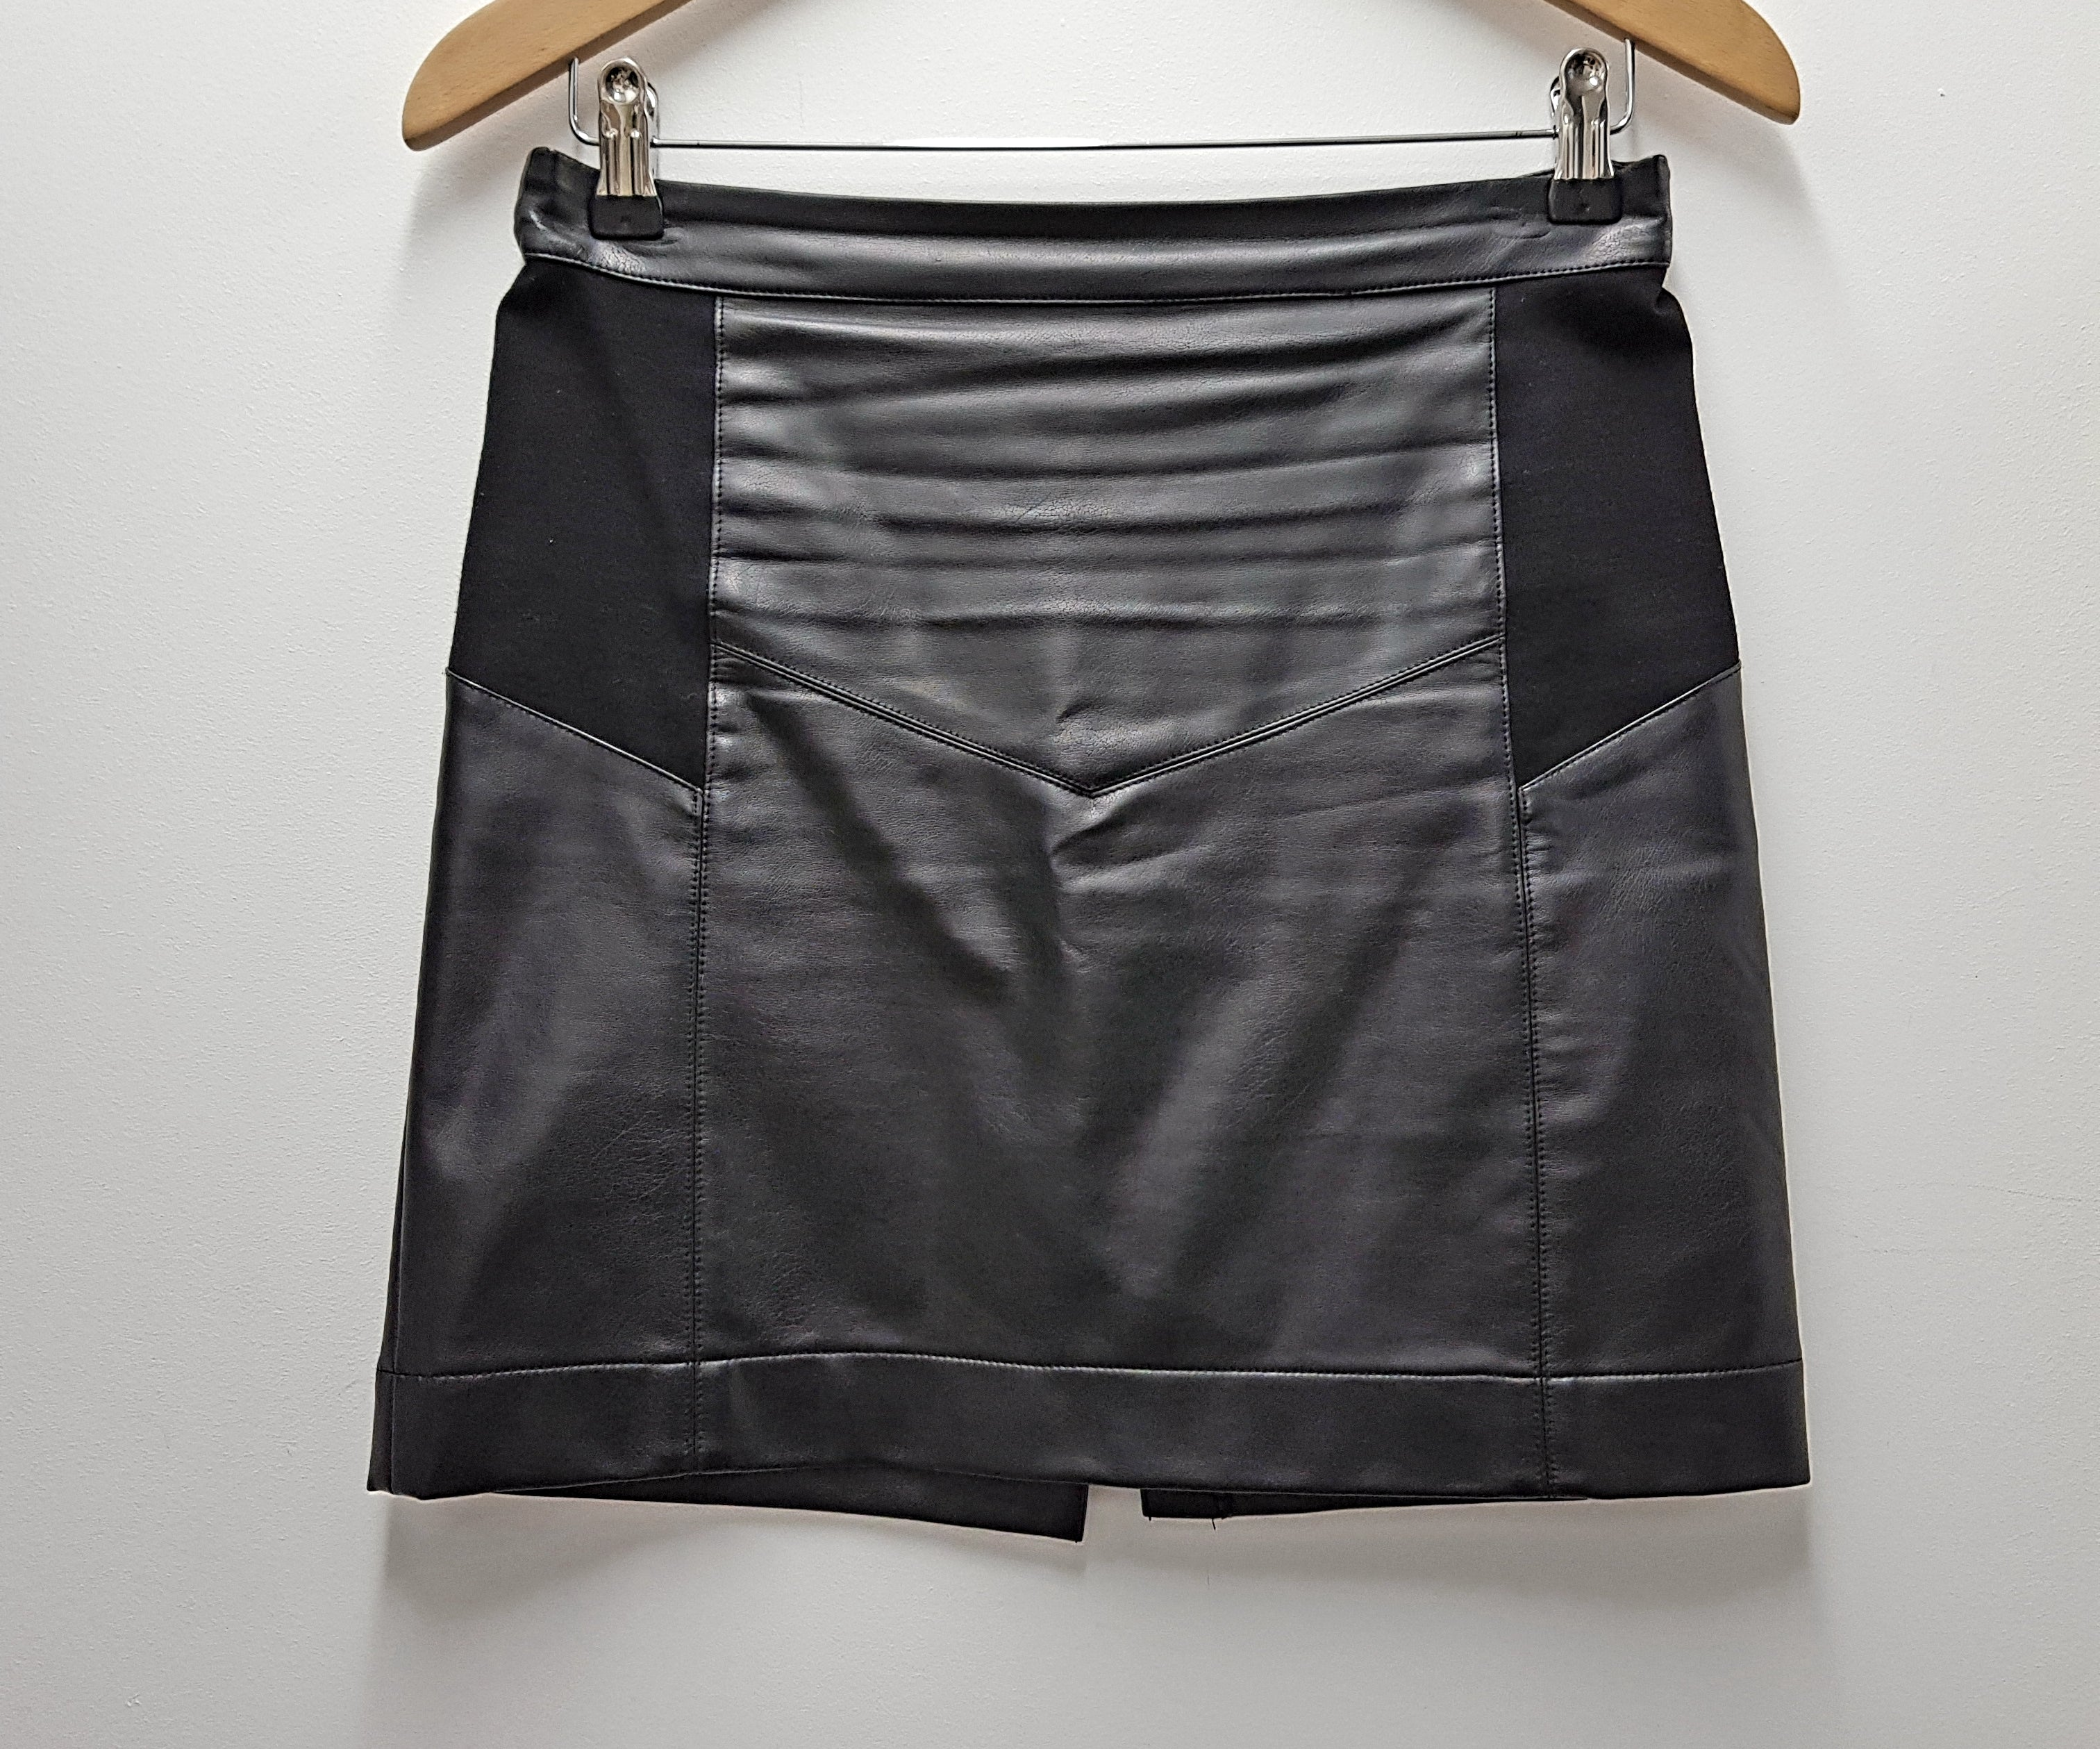 STORM - Faux Leather Mini Skirt - PRELOVED